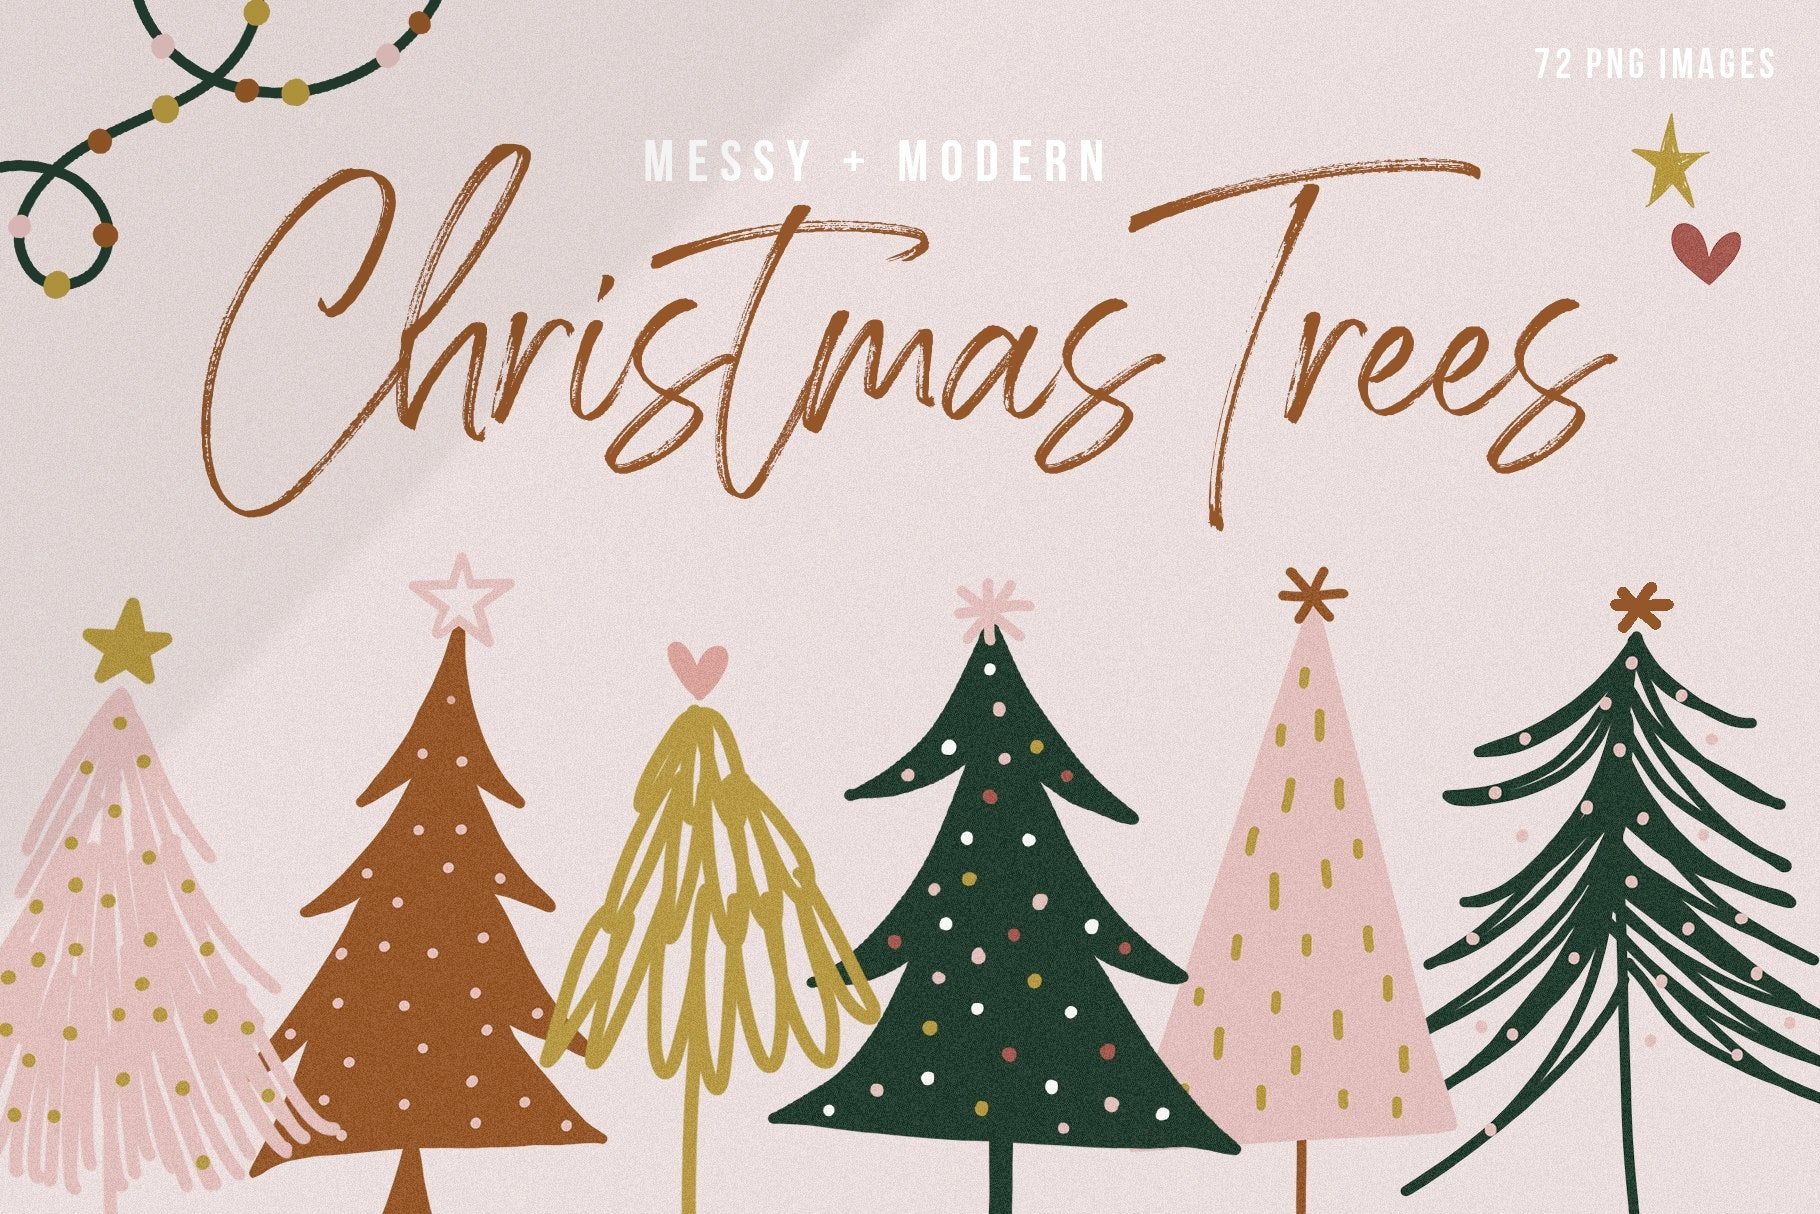 Modern Messy Christmas Trees Clip Art Collection Christmas Boho Illustrations In 2020 Christmas Graphic Design Christmas Tree Clipart Christmas Tree Quotes